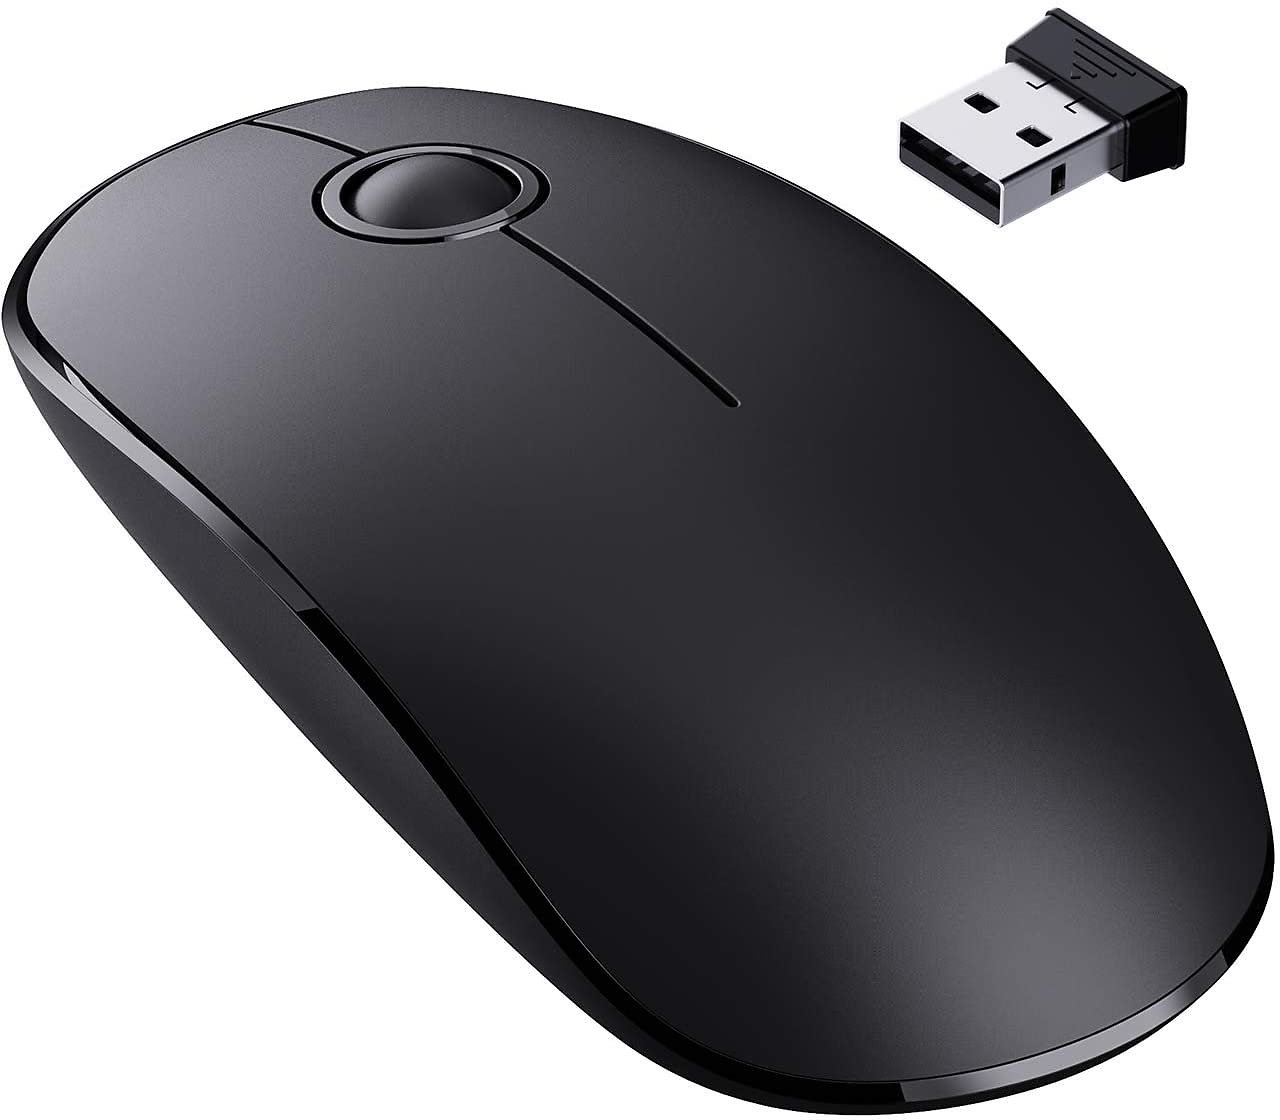 36% Discount - VicTsing Slim Wireless Mouse, 2.4G Silent Laptop Mouse- Enjoy Noiseless Clicking